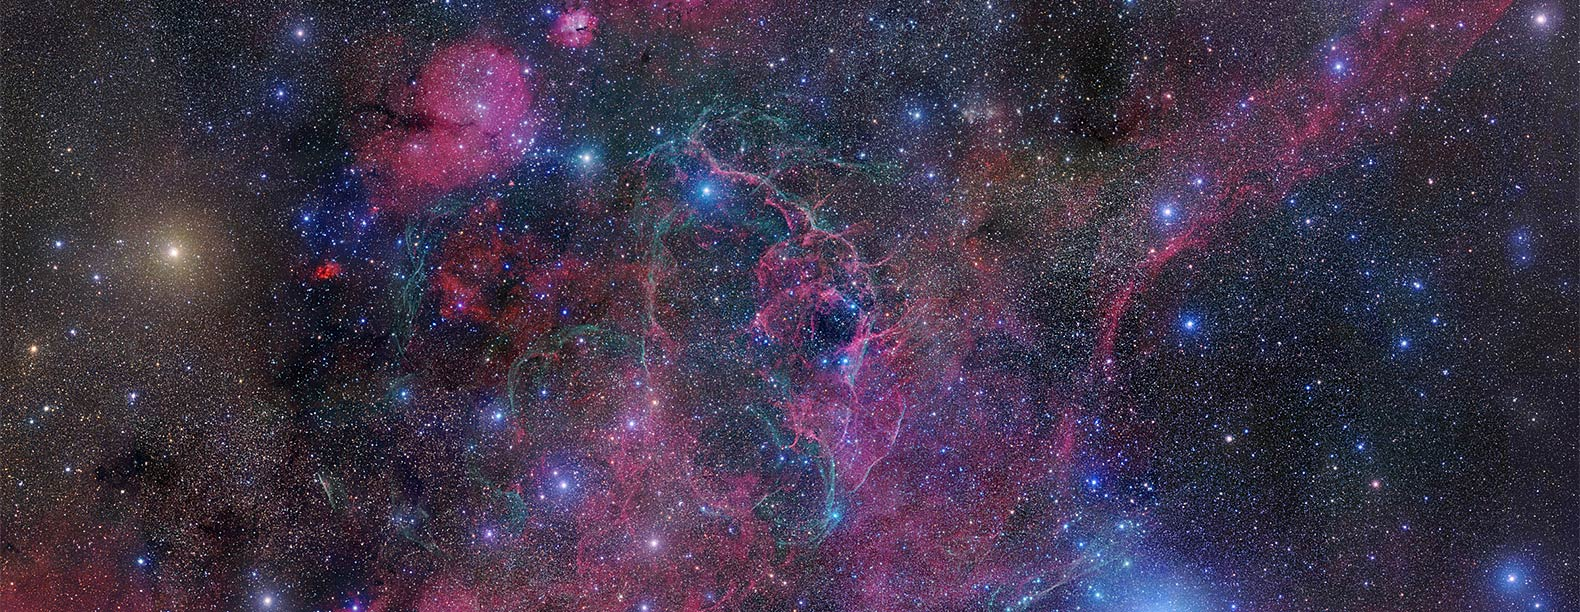 View of the expanding debris cloud from the death explosion of a massive star